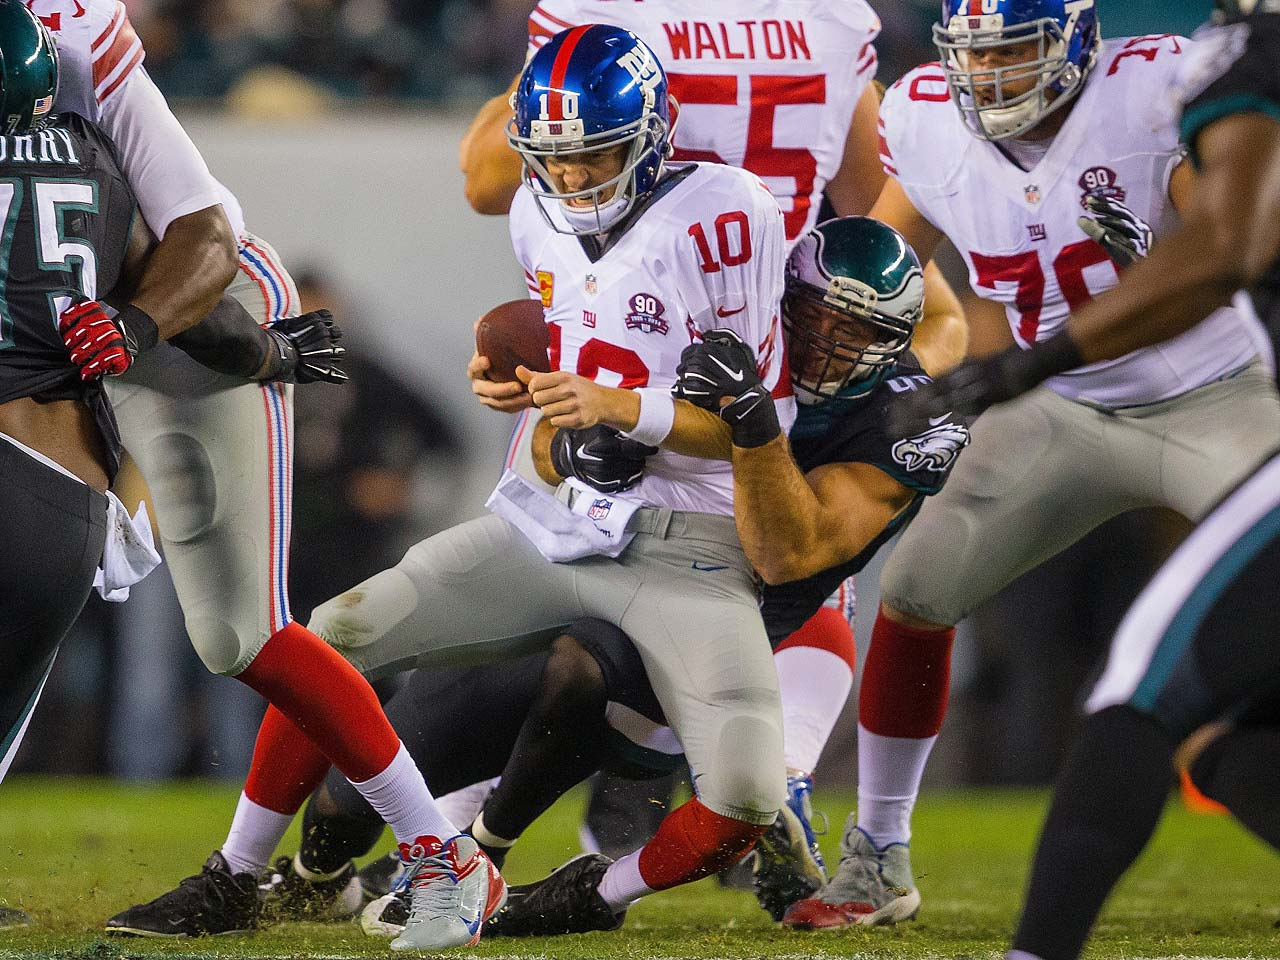 Eli Manning is pulled down by an Eagle defender on a night in which the New York Giants suffered eight sacks.